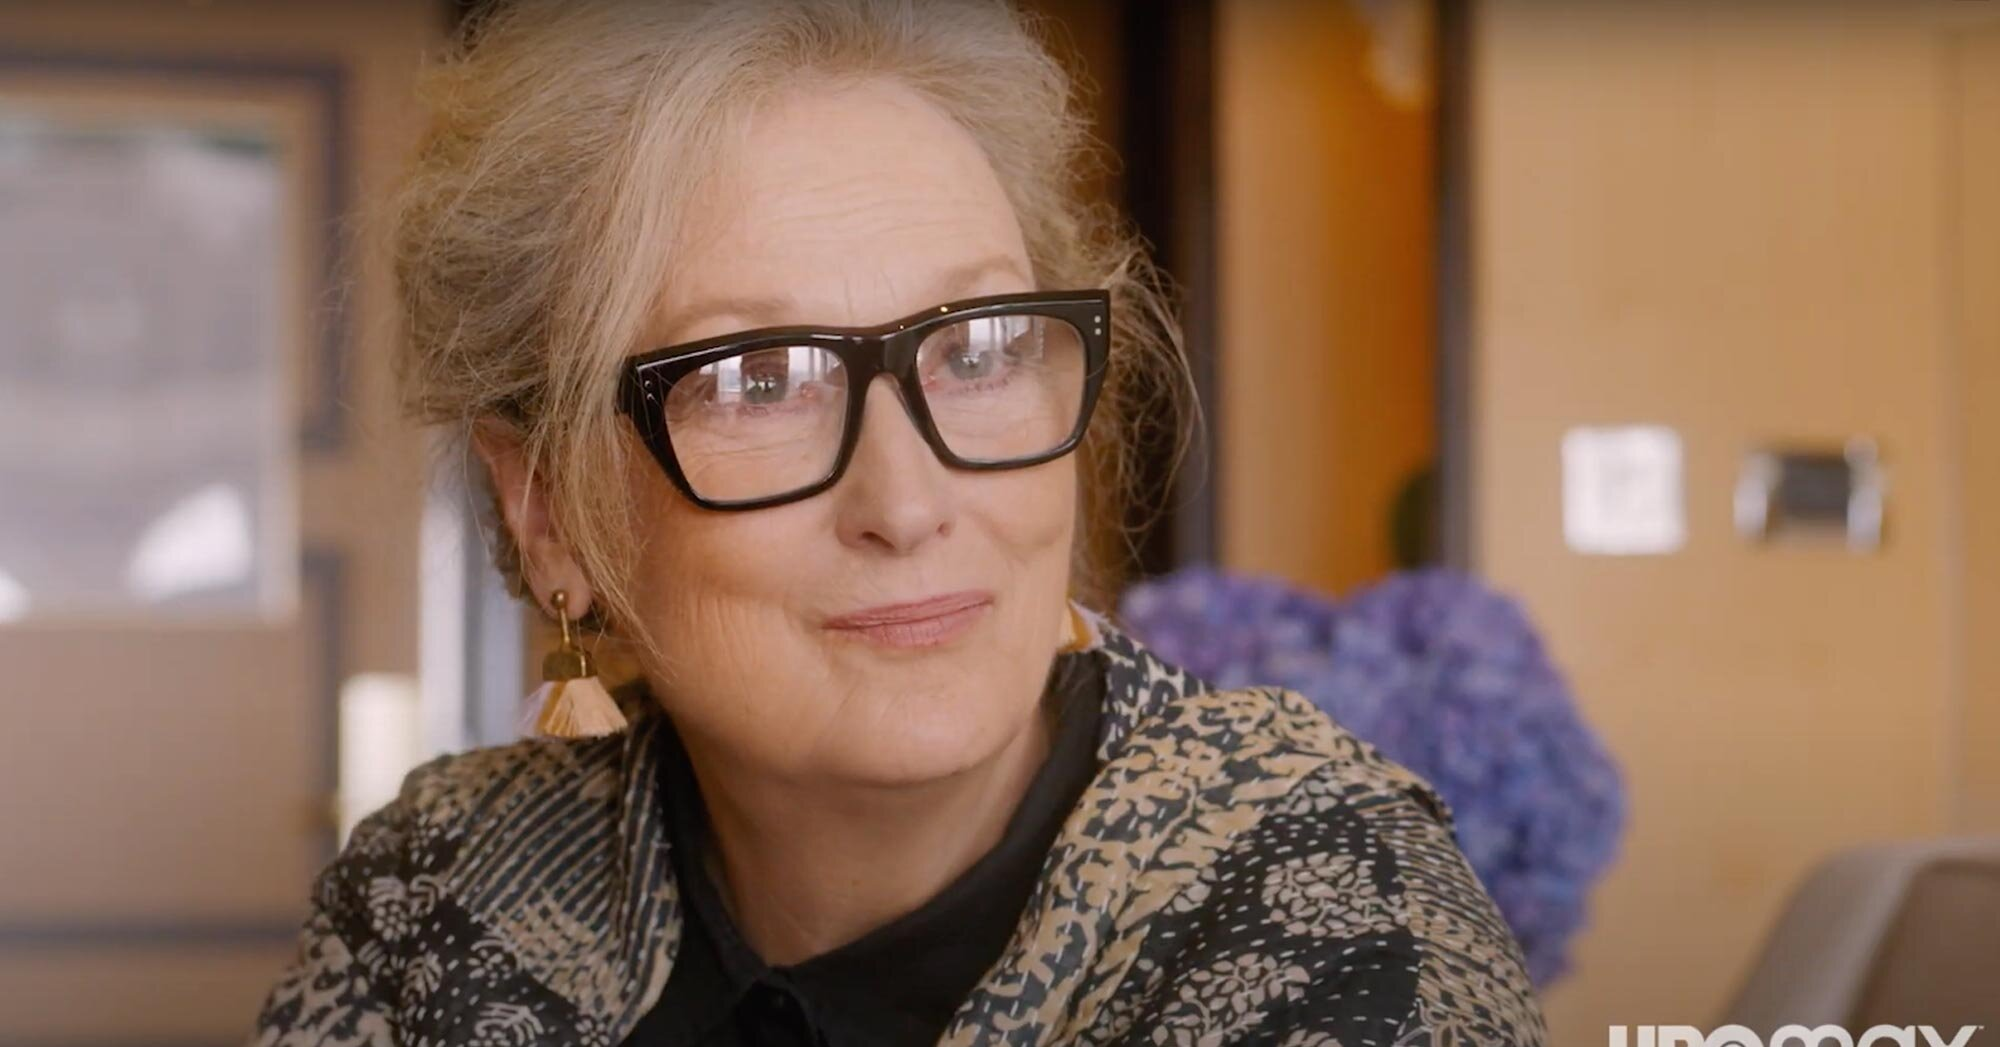 Meryl Streep is the talk of HBO Max in first look at Steven Soderbergh's 'Let Them All Talk'